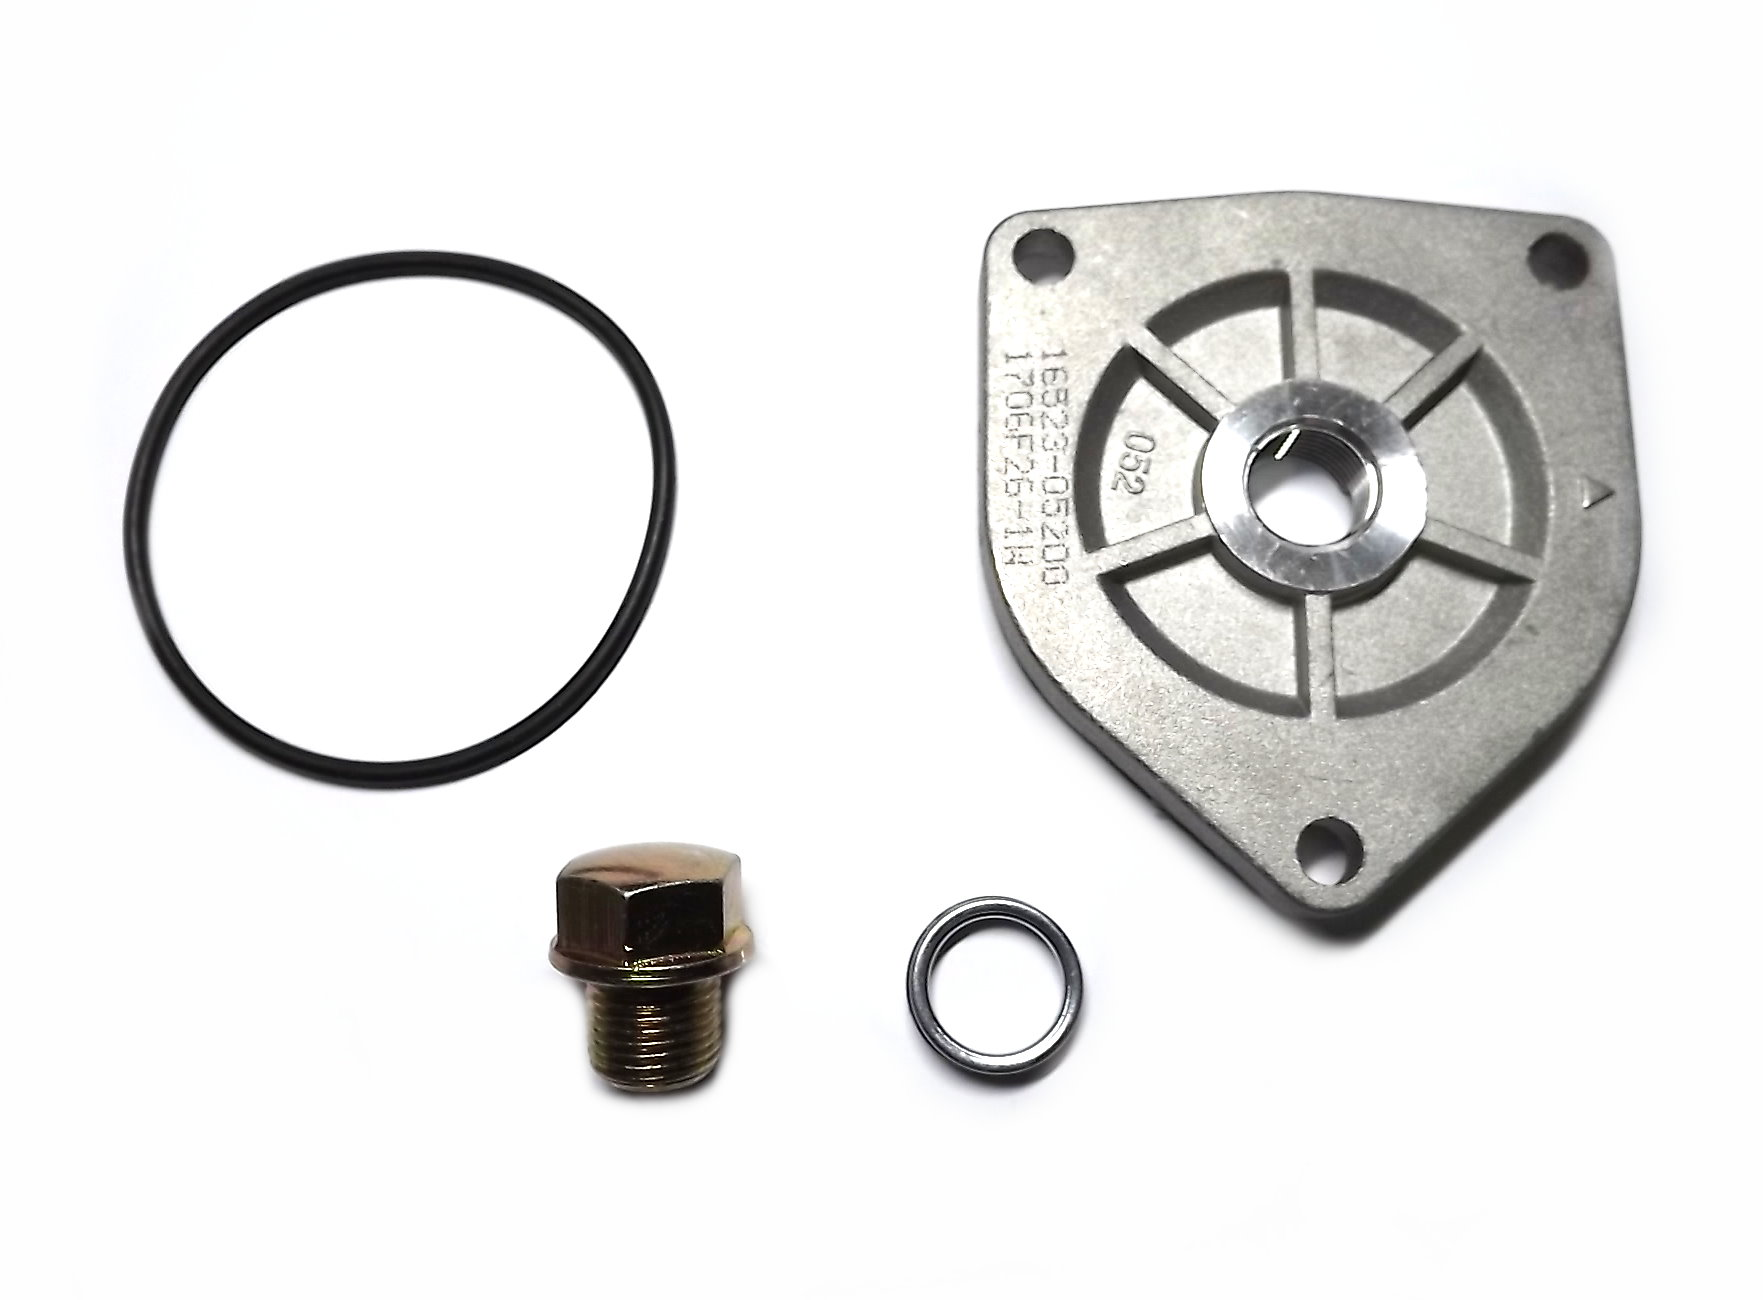 SUMP PLUG, PLATE and O ring Kit for K157FMi engines